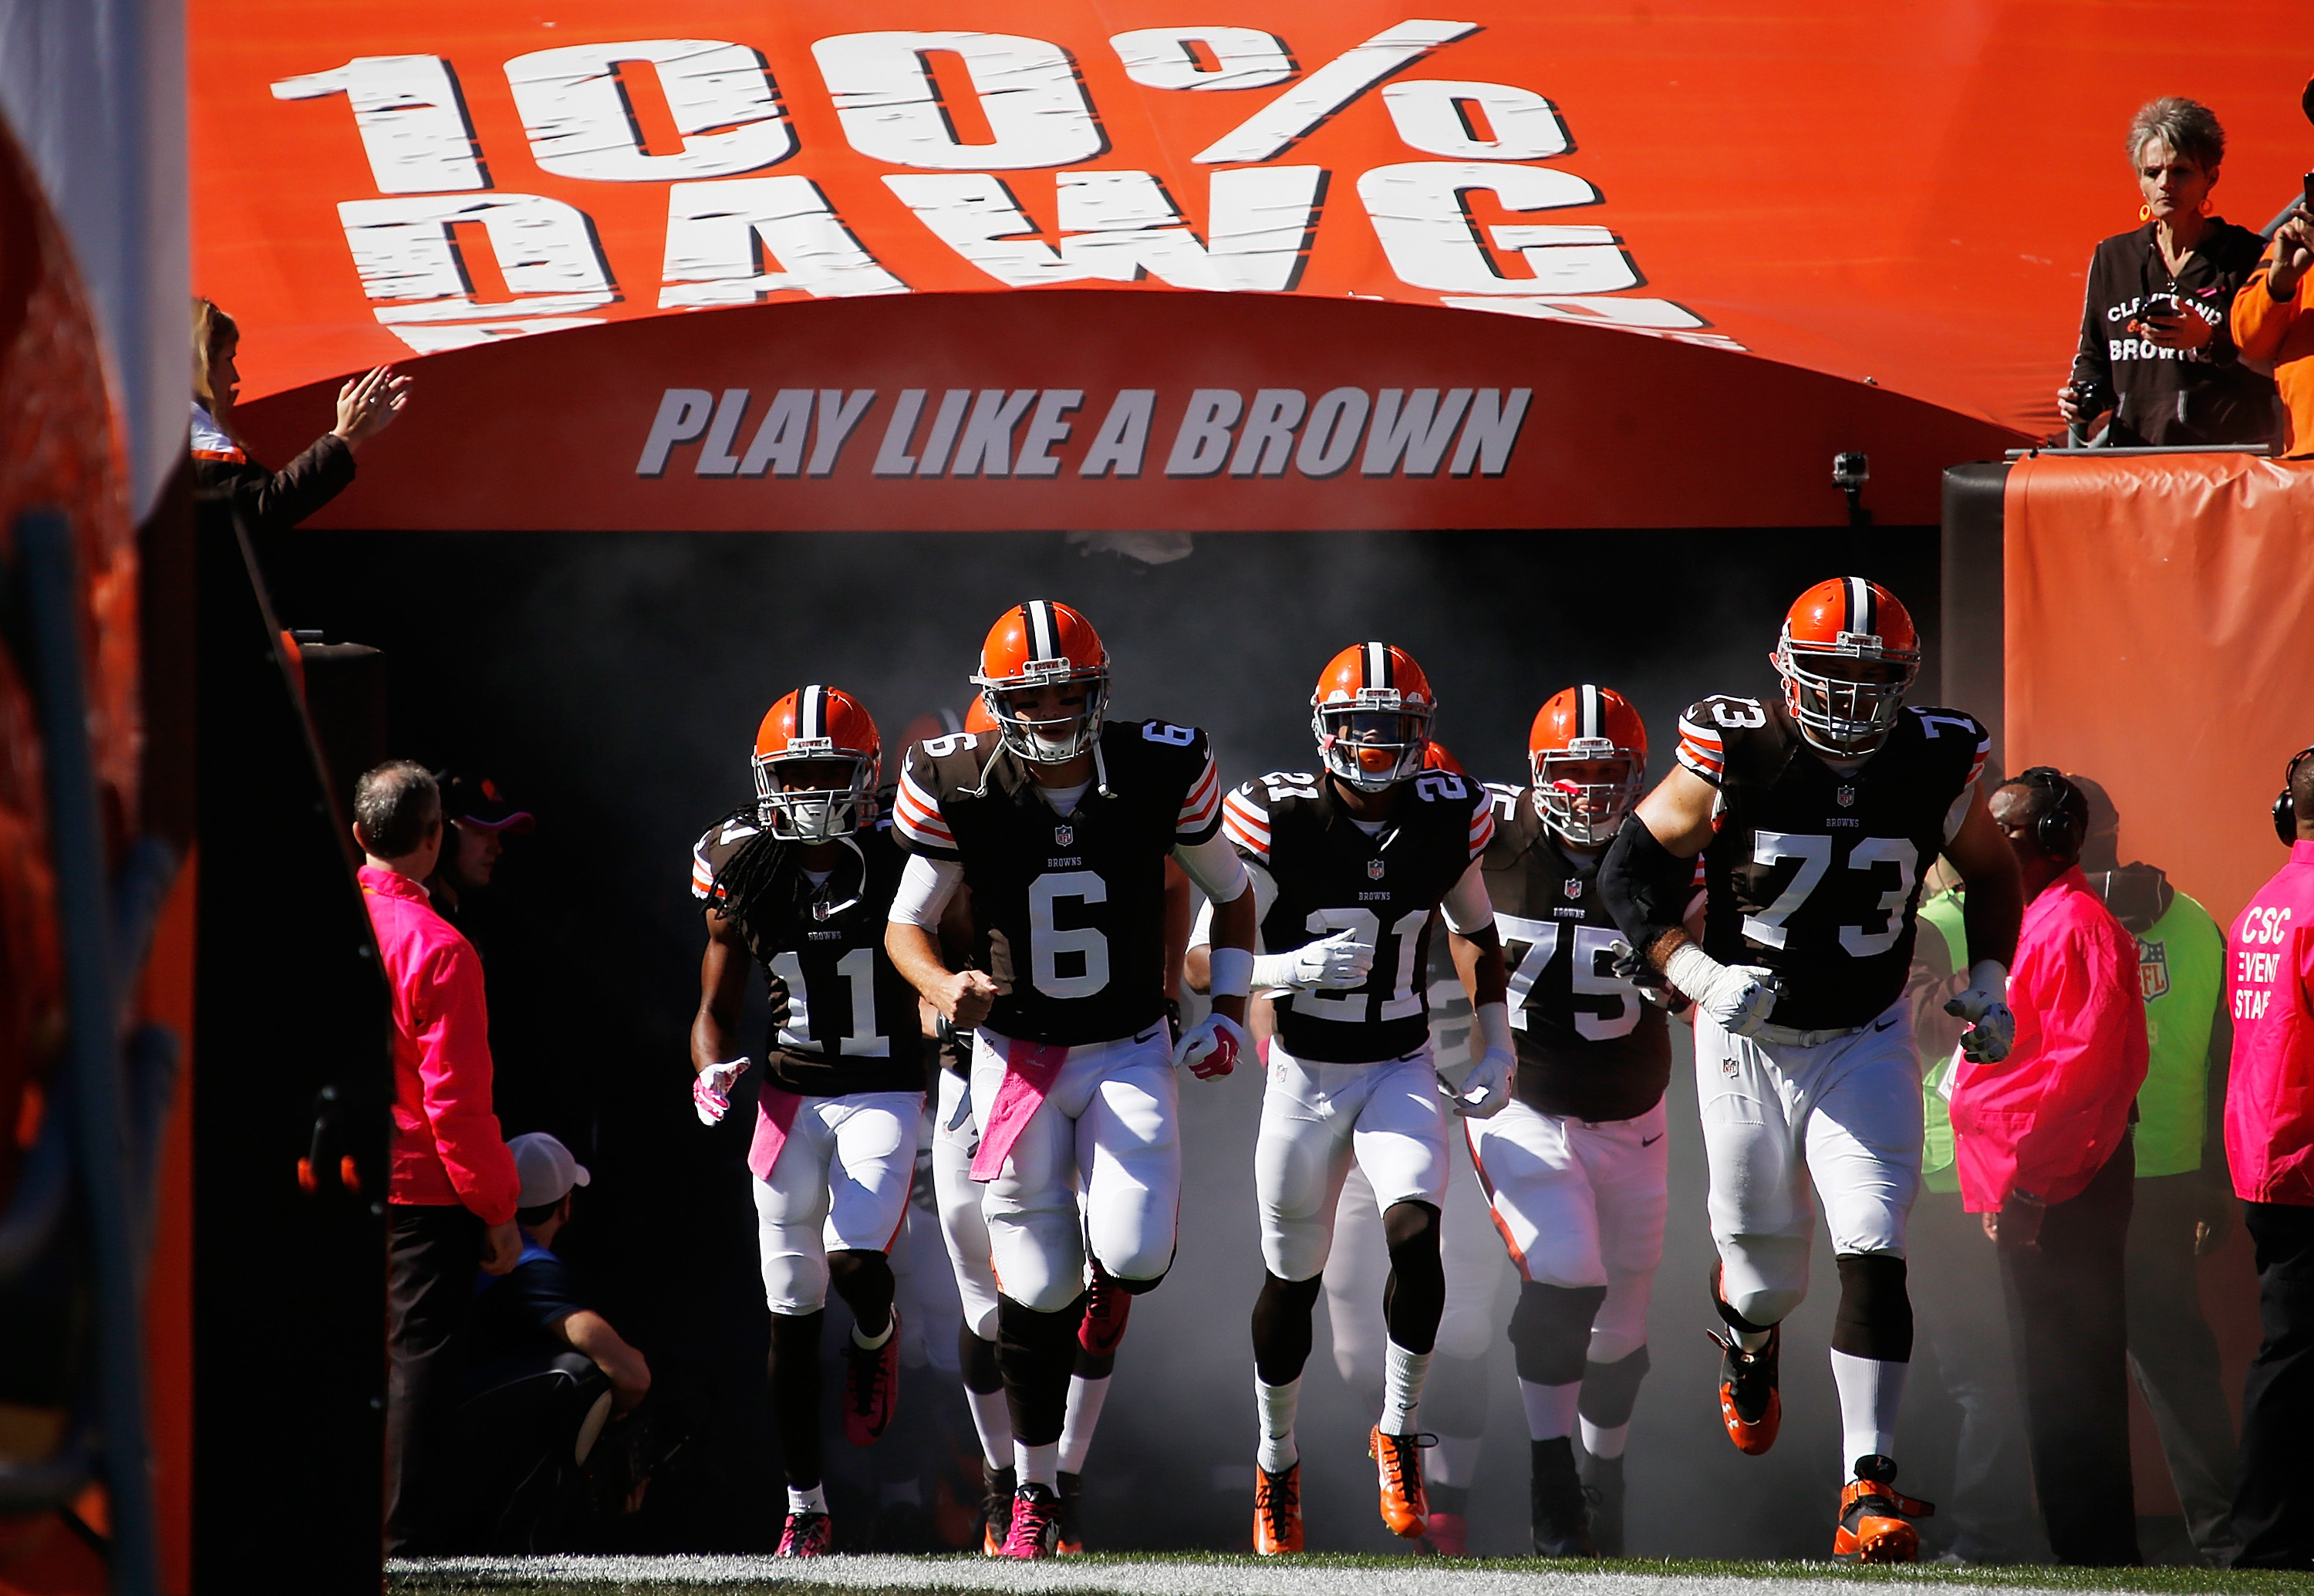 Here's to hoping Cleveland's players do NOT play like Browns in their Week 17 game against the Baltimore Ravens